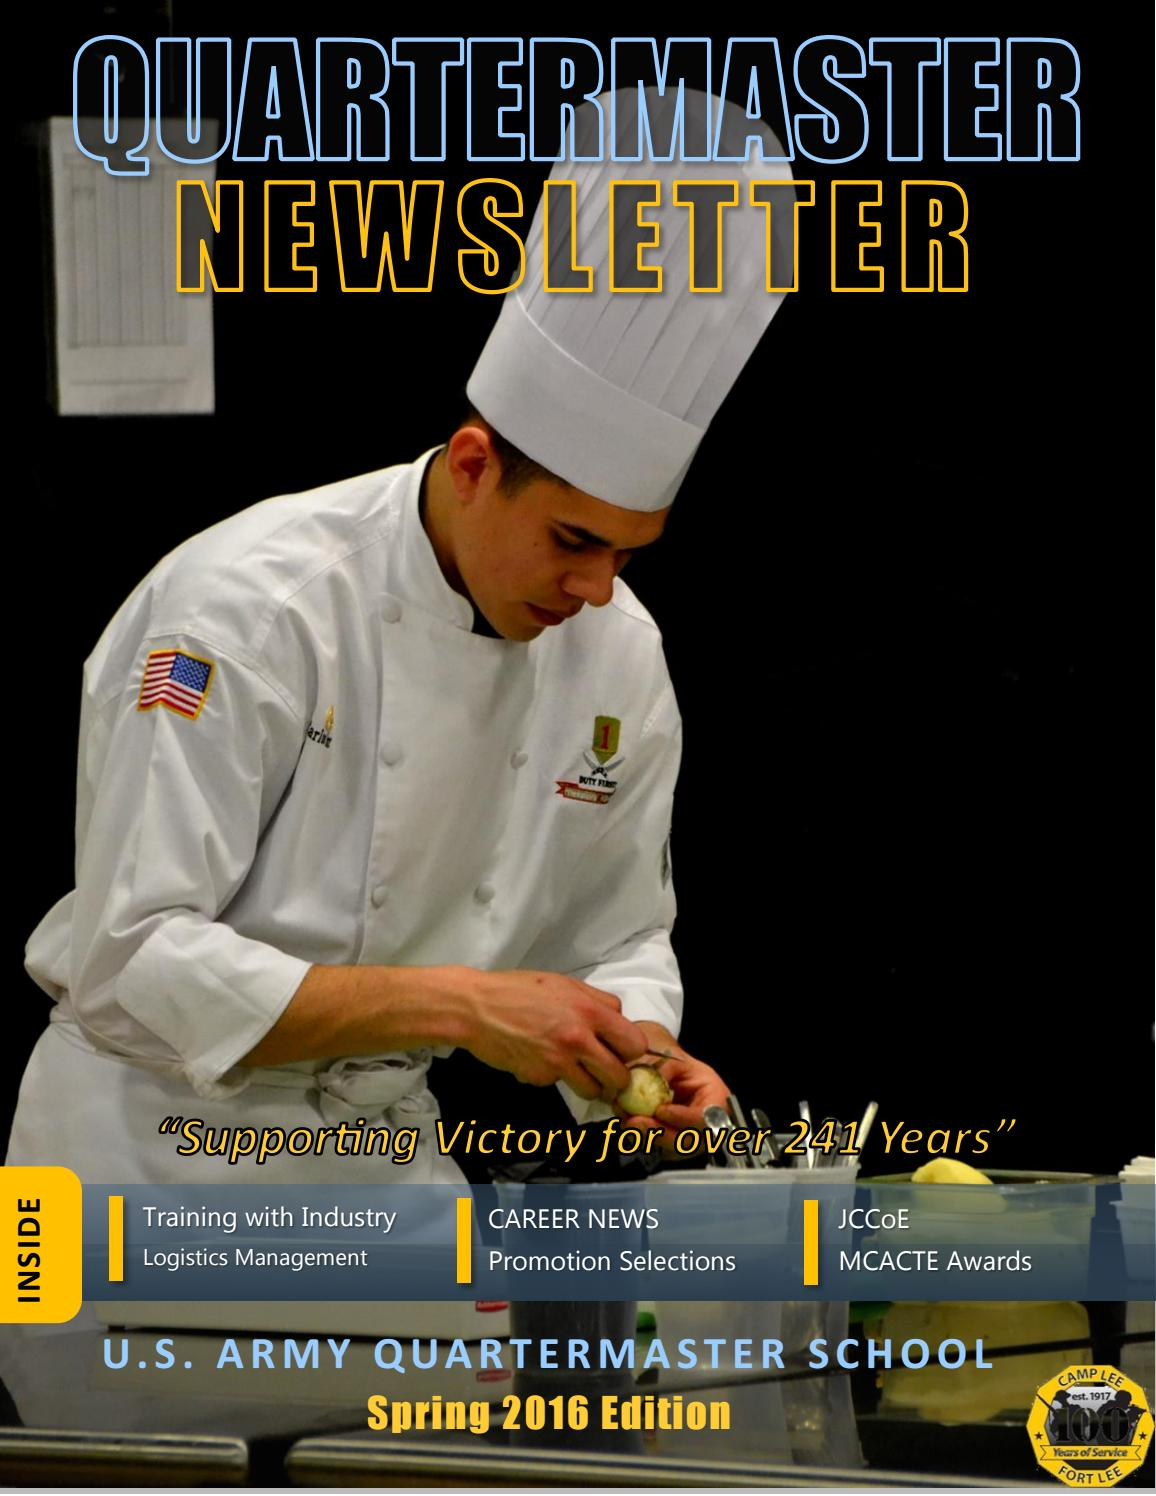 connection newsletter fall by us army quartermaster school connection newsletter fall 2015 by us army quartermaster school issuu